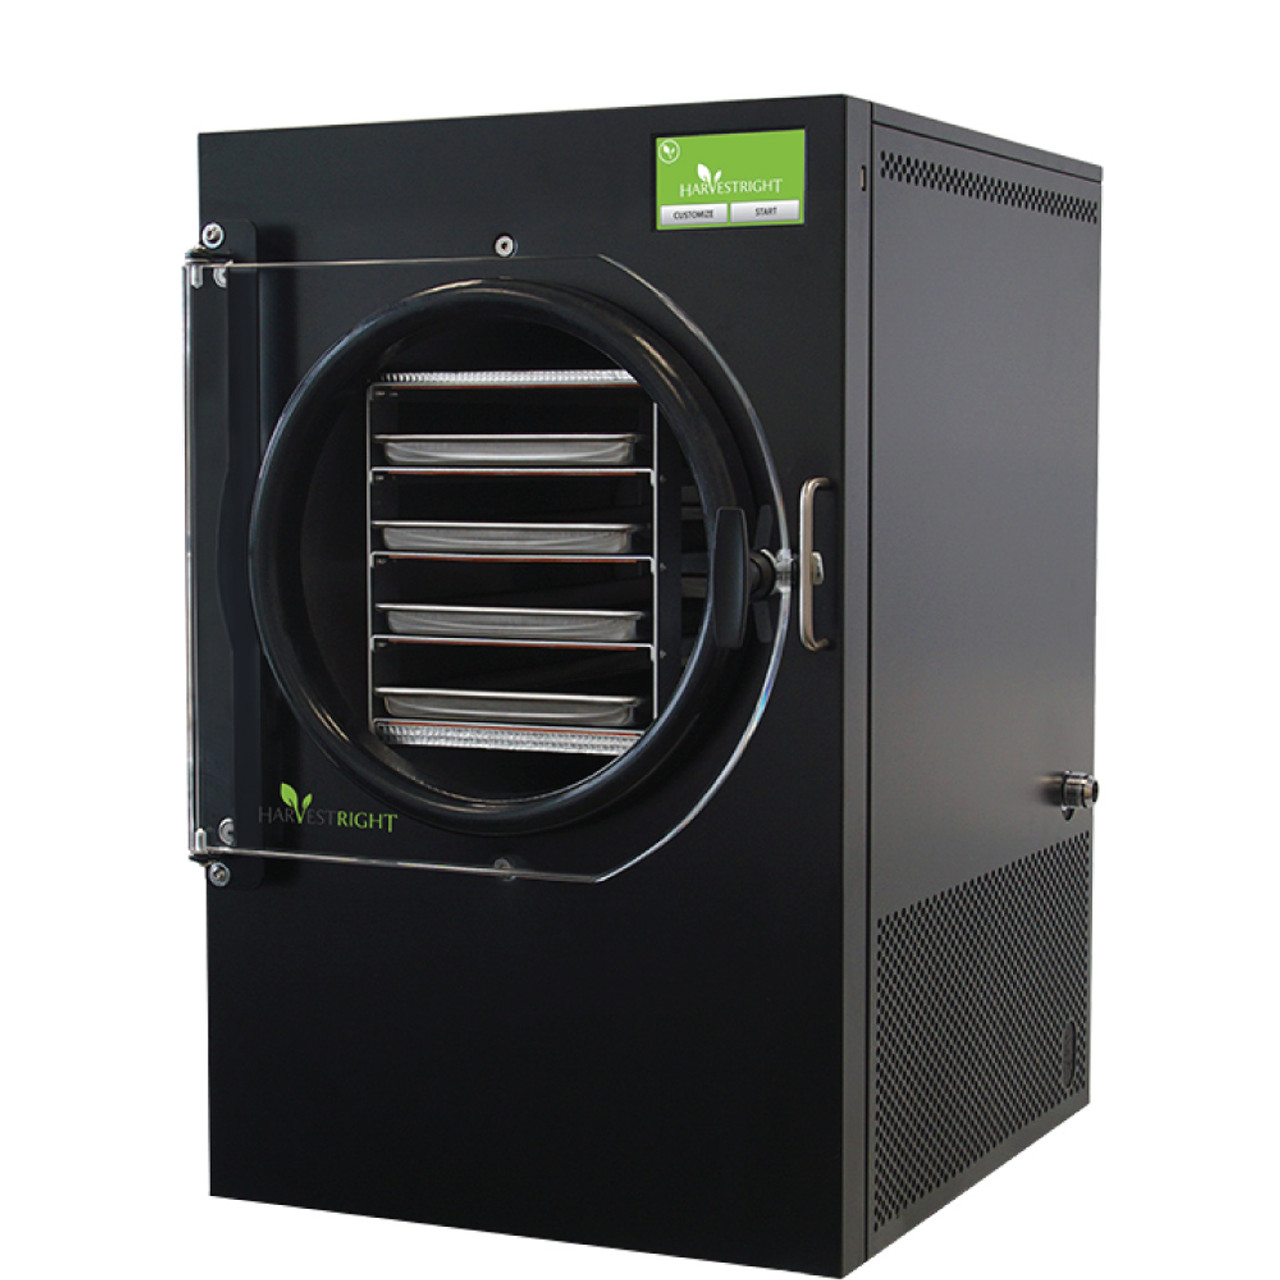 Harvest Right Home Freeze Dryer